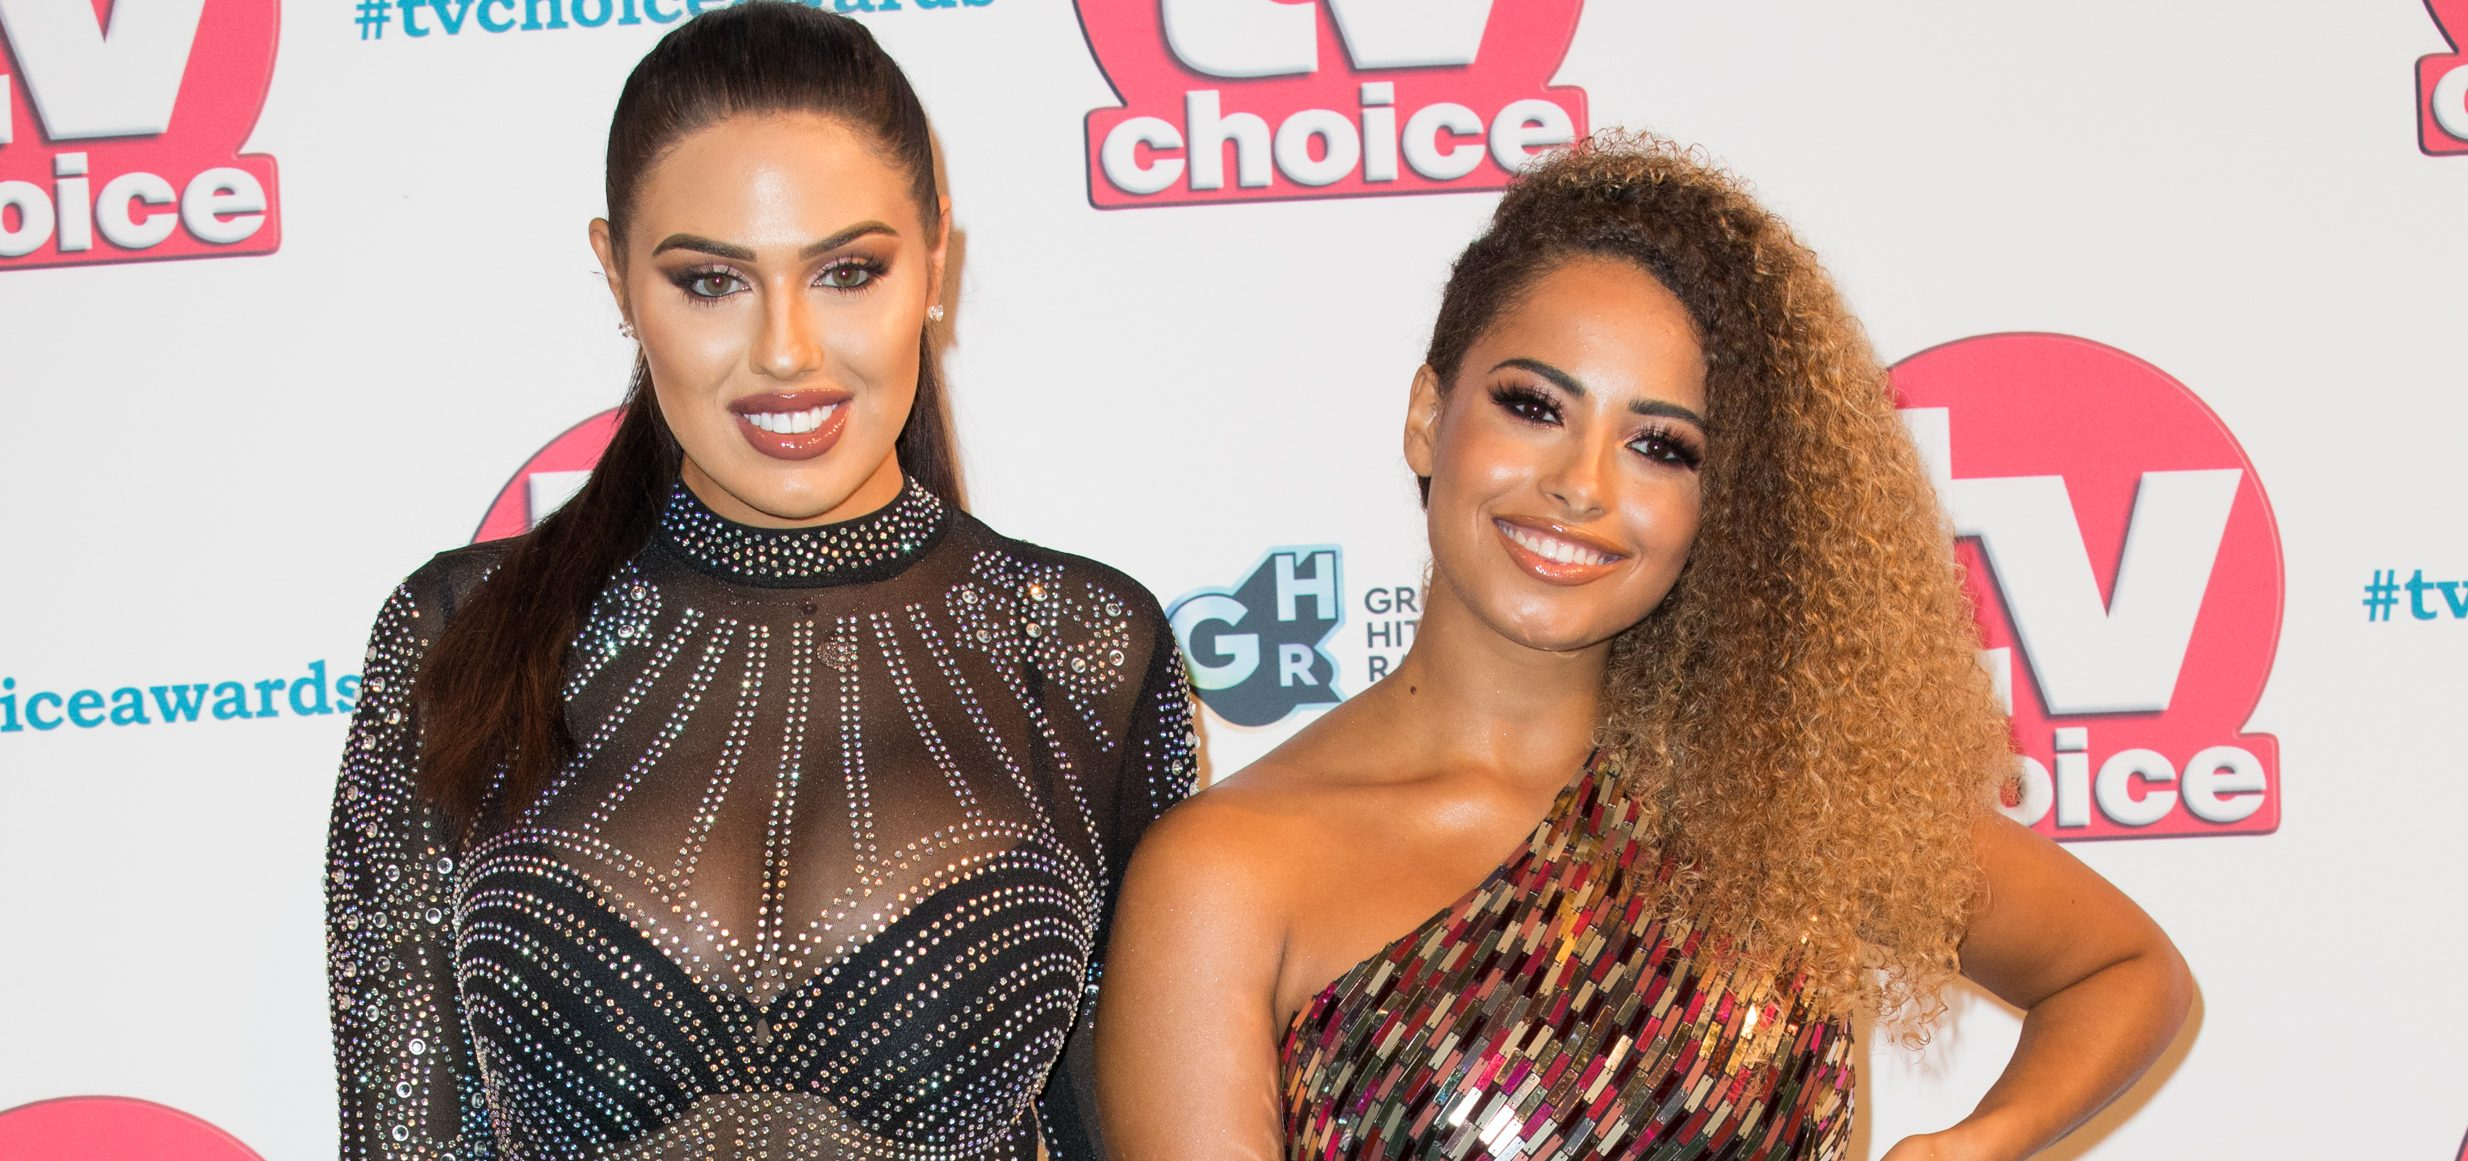 Amber Gill moved in with her Love Island co-star Anna Vakili after heartbreak